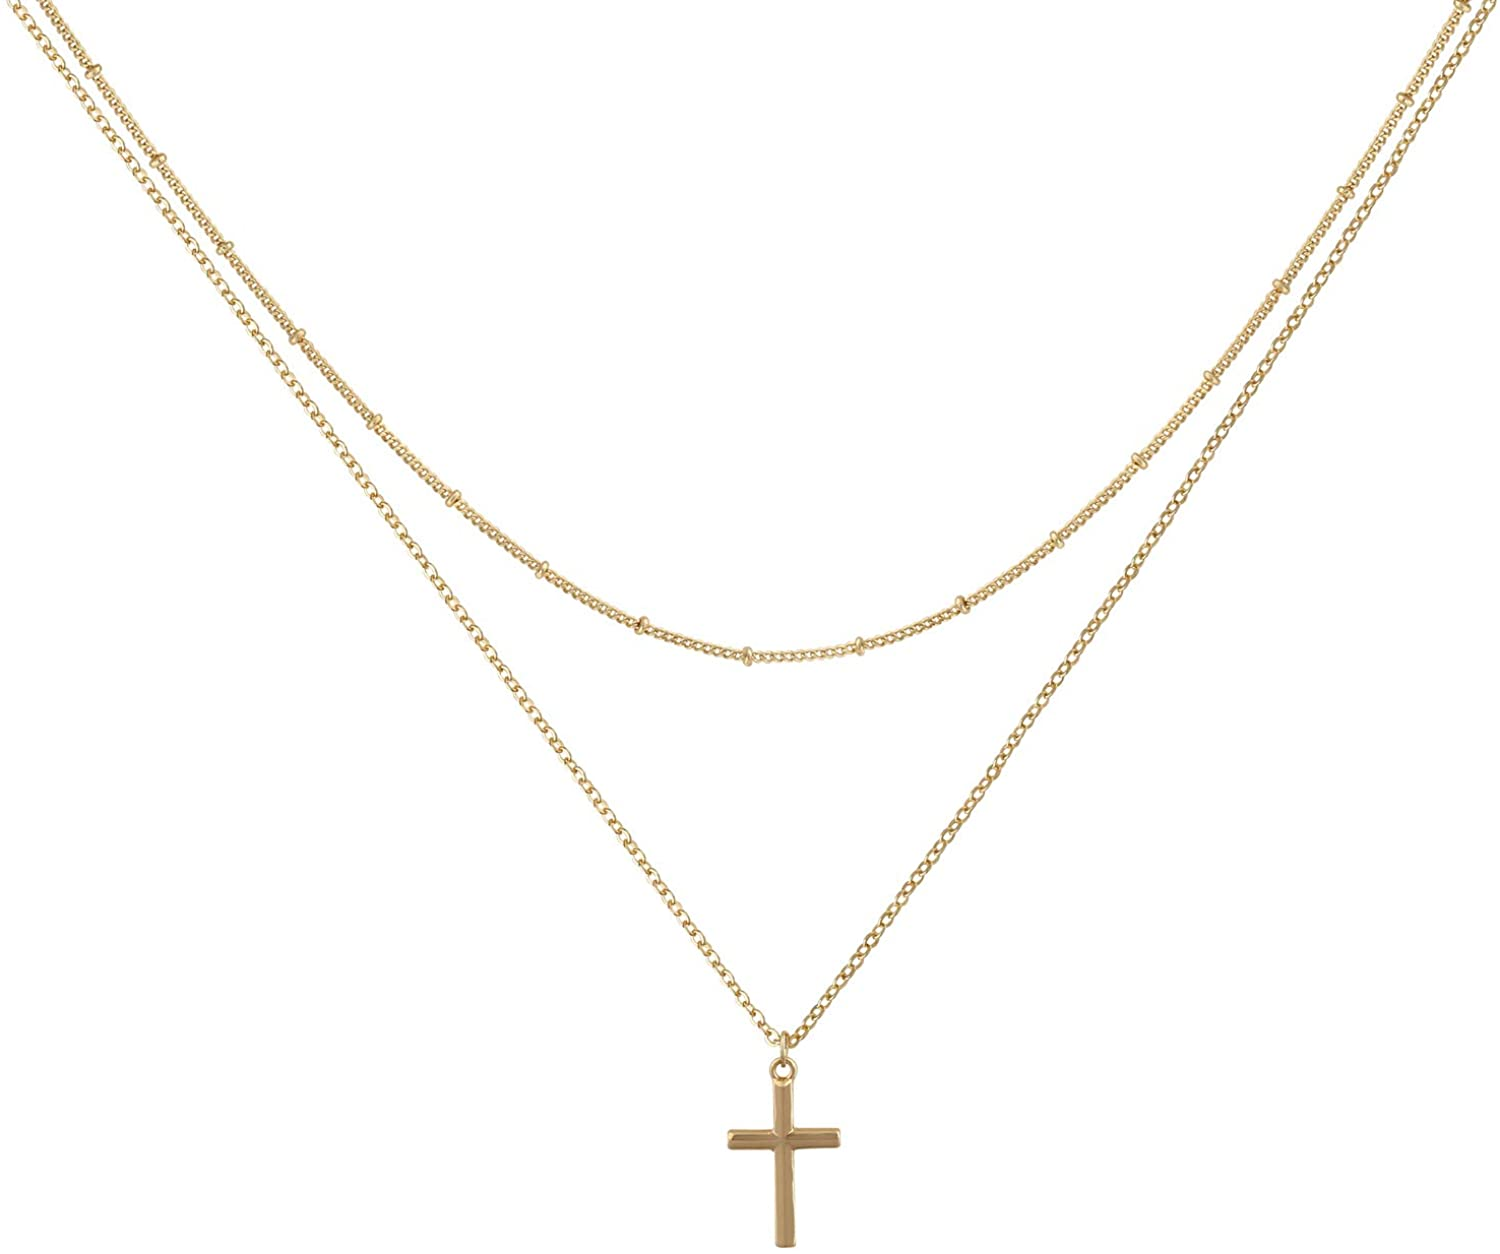 14K Gold Have Faith Necklace by JEWLR